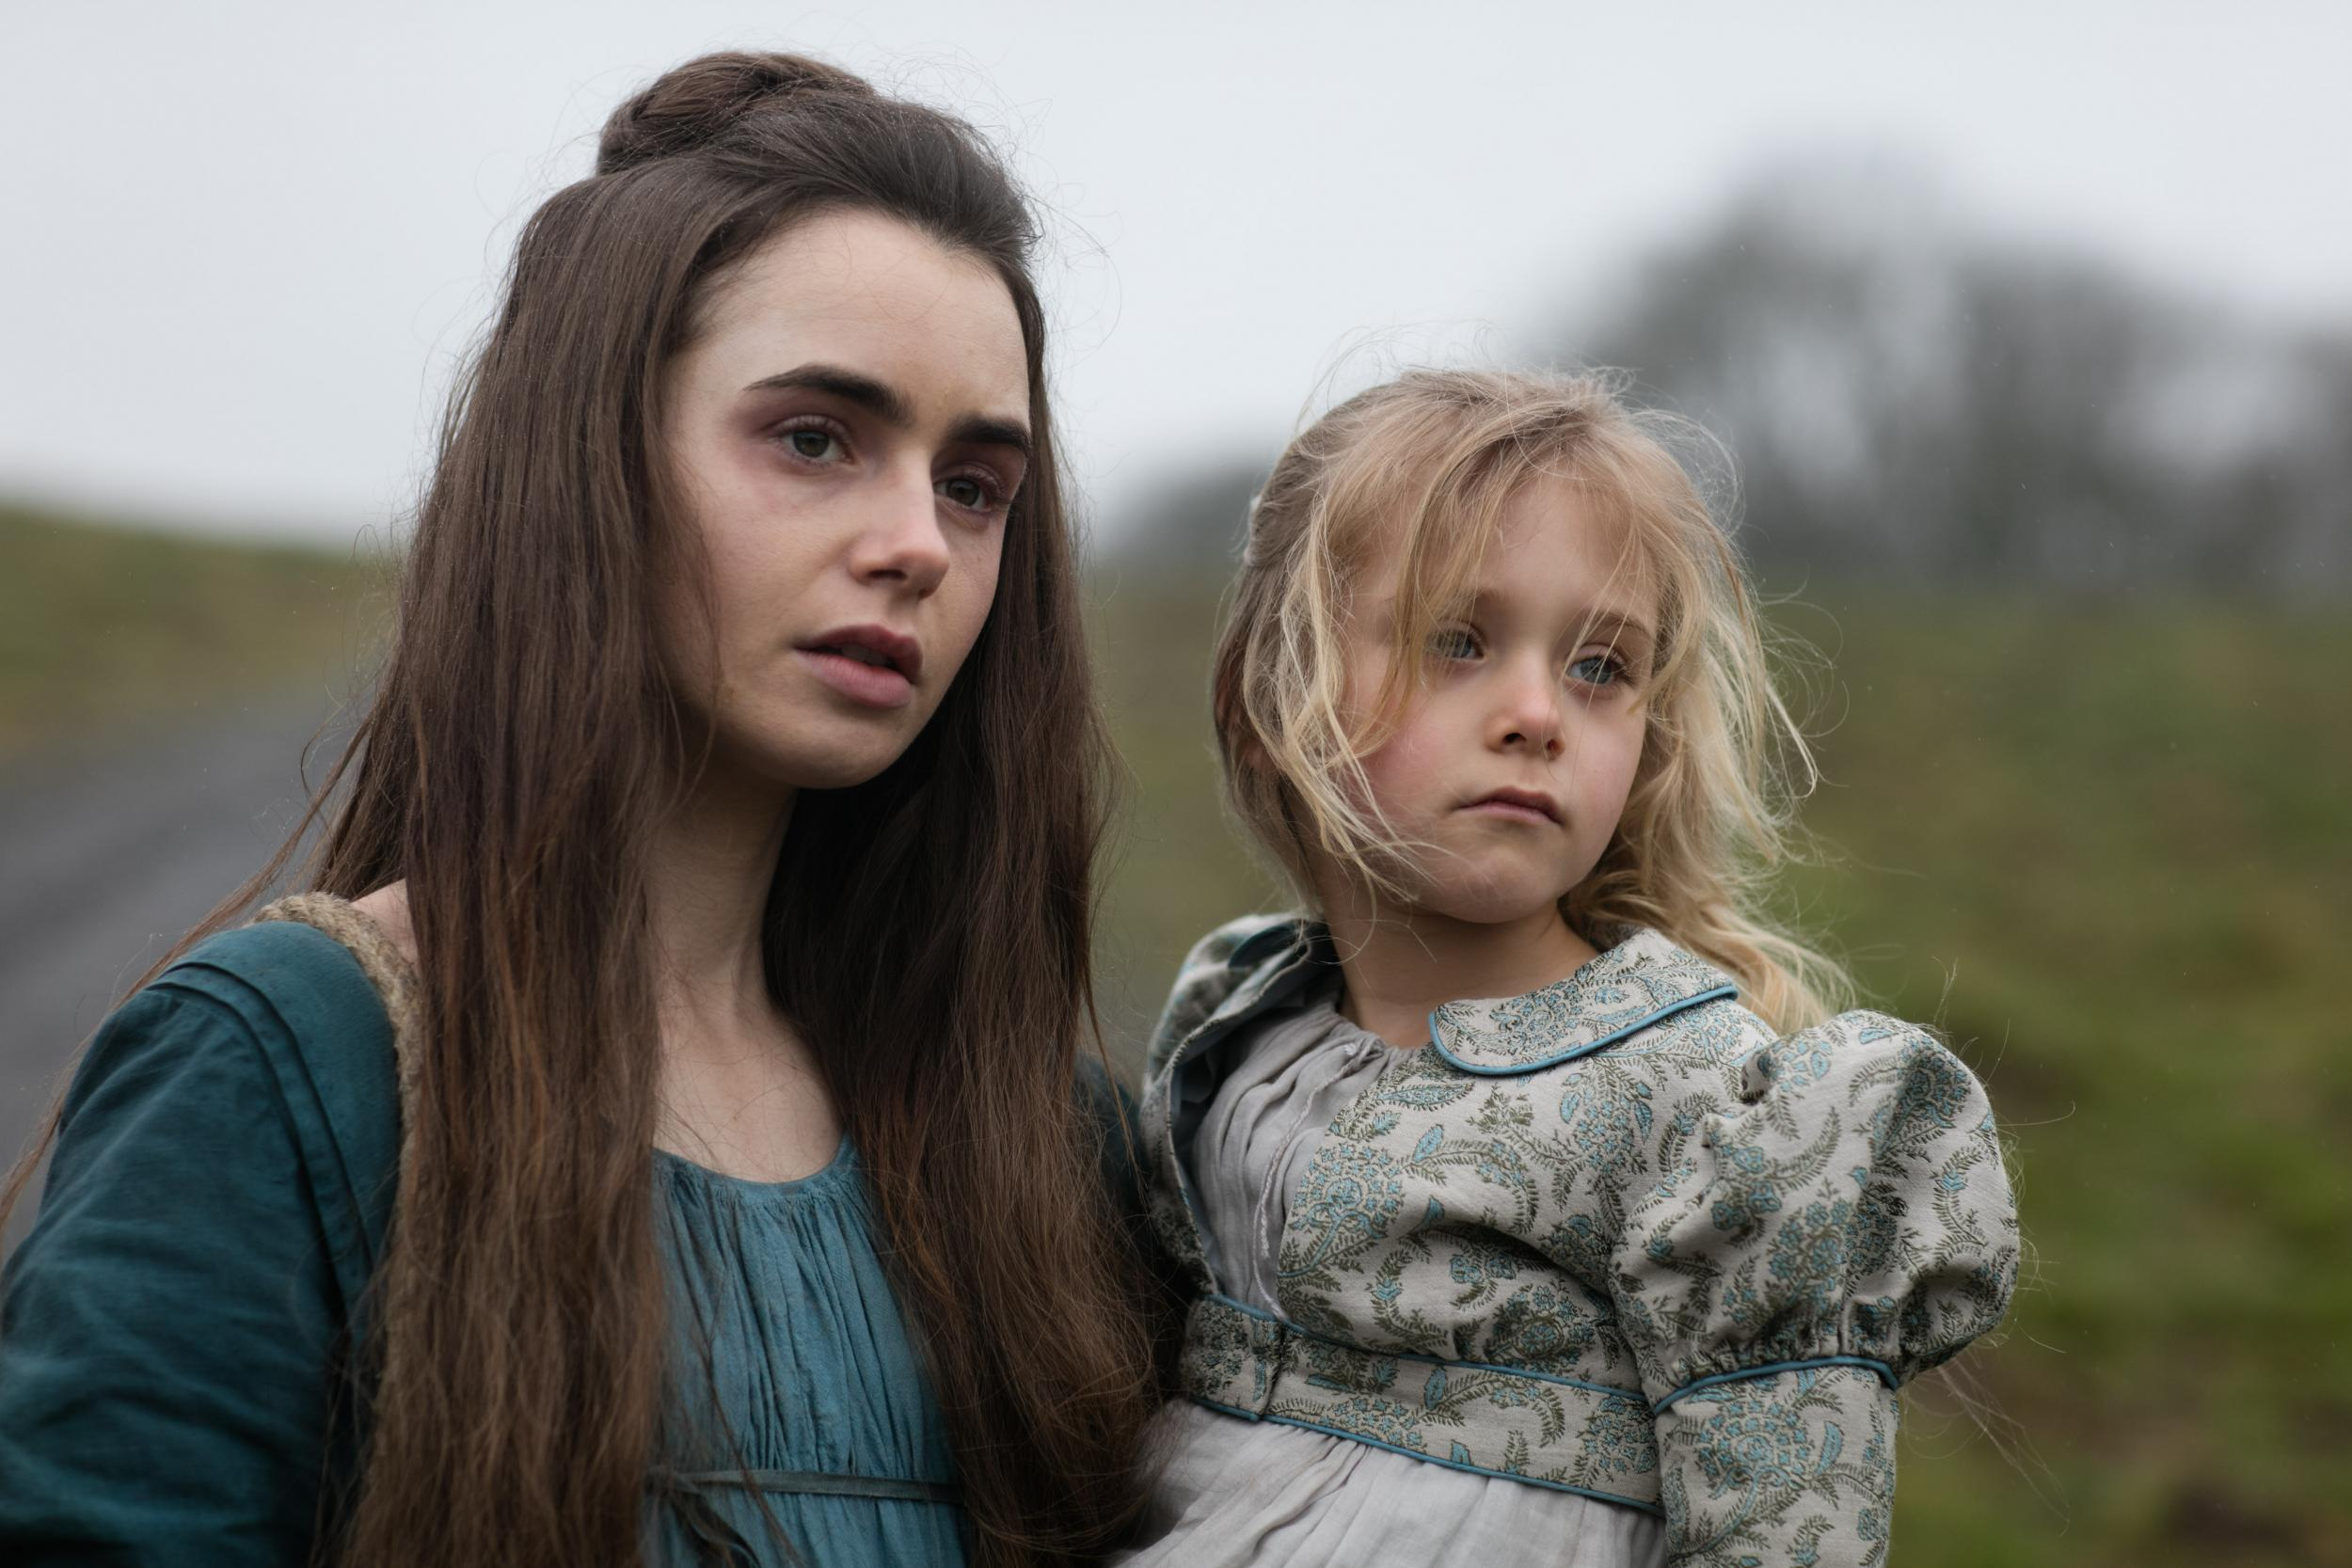 Les Misrables Review Episode Two Lily Collins Plays The Tragic Fantine With Steeliness And Grace